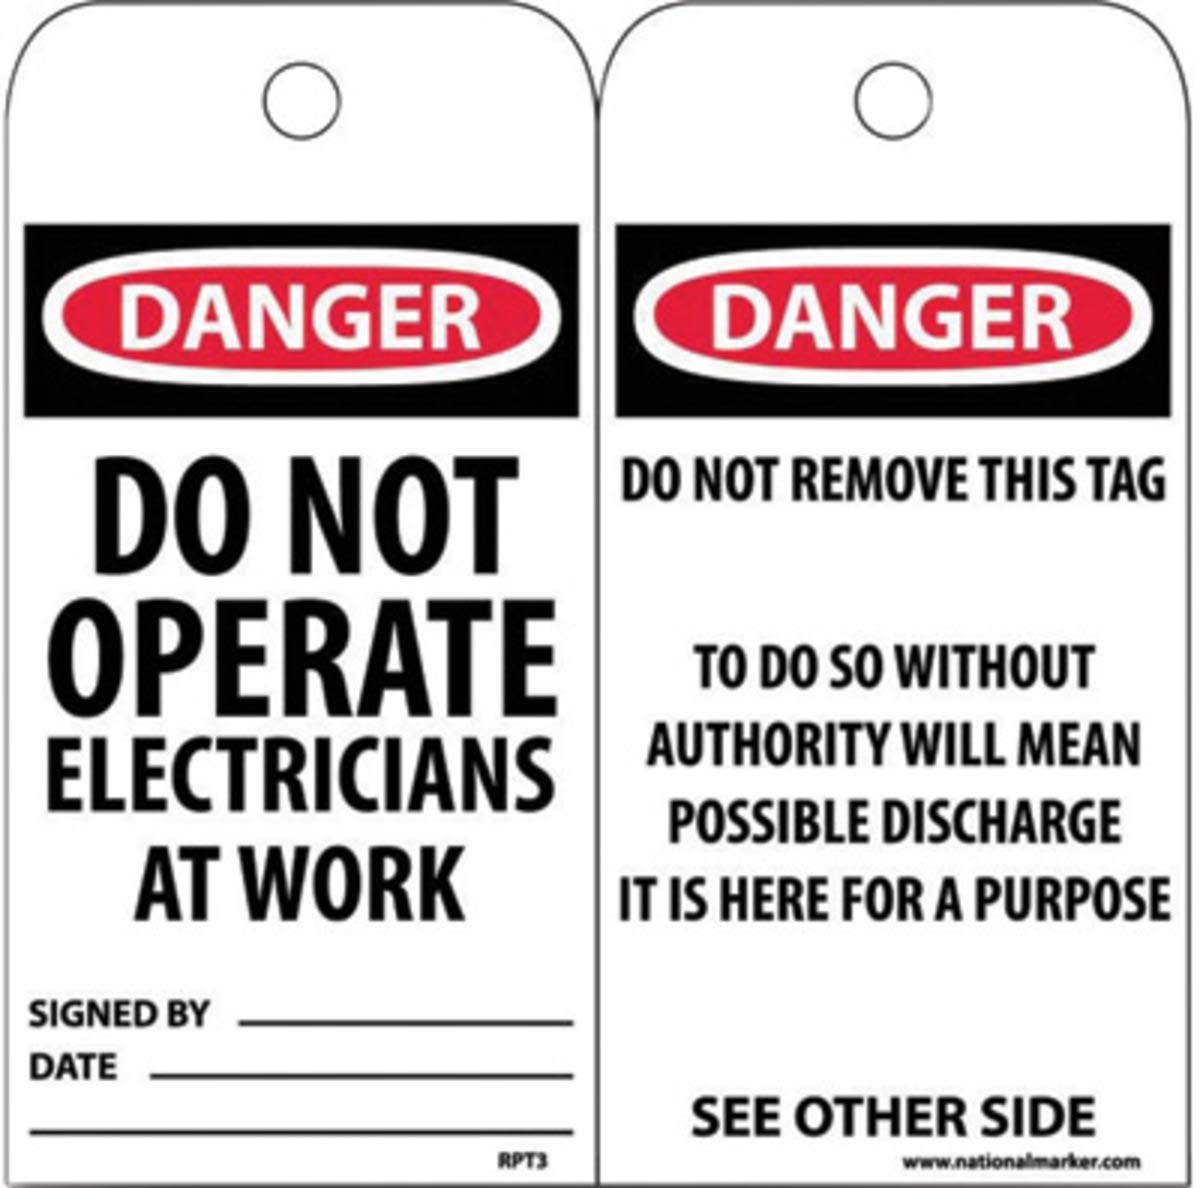 NMC 6'' X 3'' Unrippable Vinyl Tag ''DO NOT OPERATE ELECTRICIANS AT WORK SIGNED BY___ DATE___ '', Package Size: 25 Each